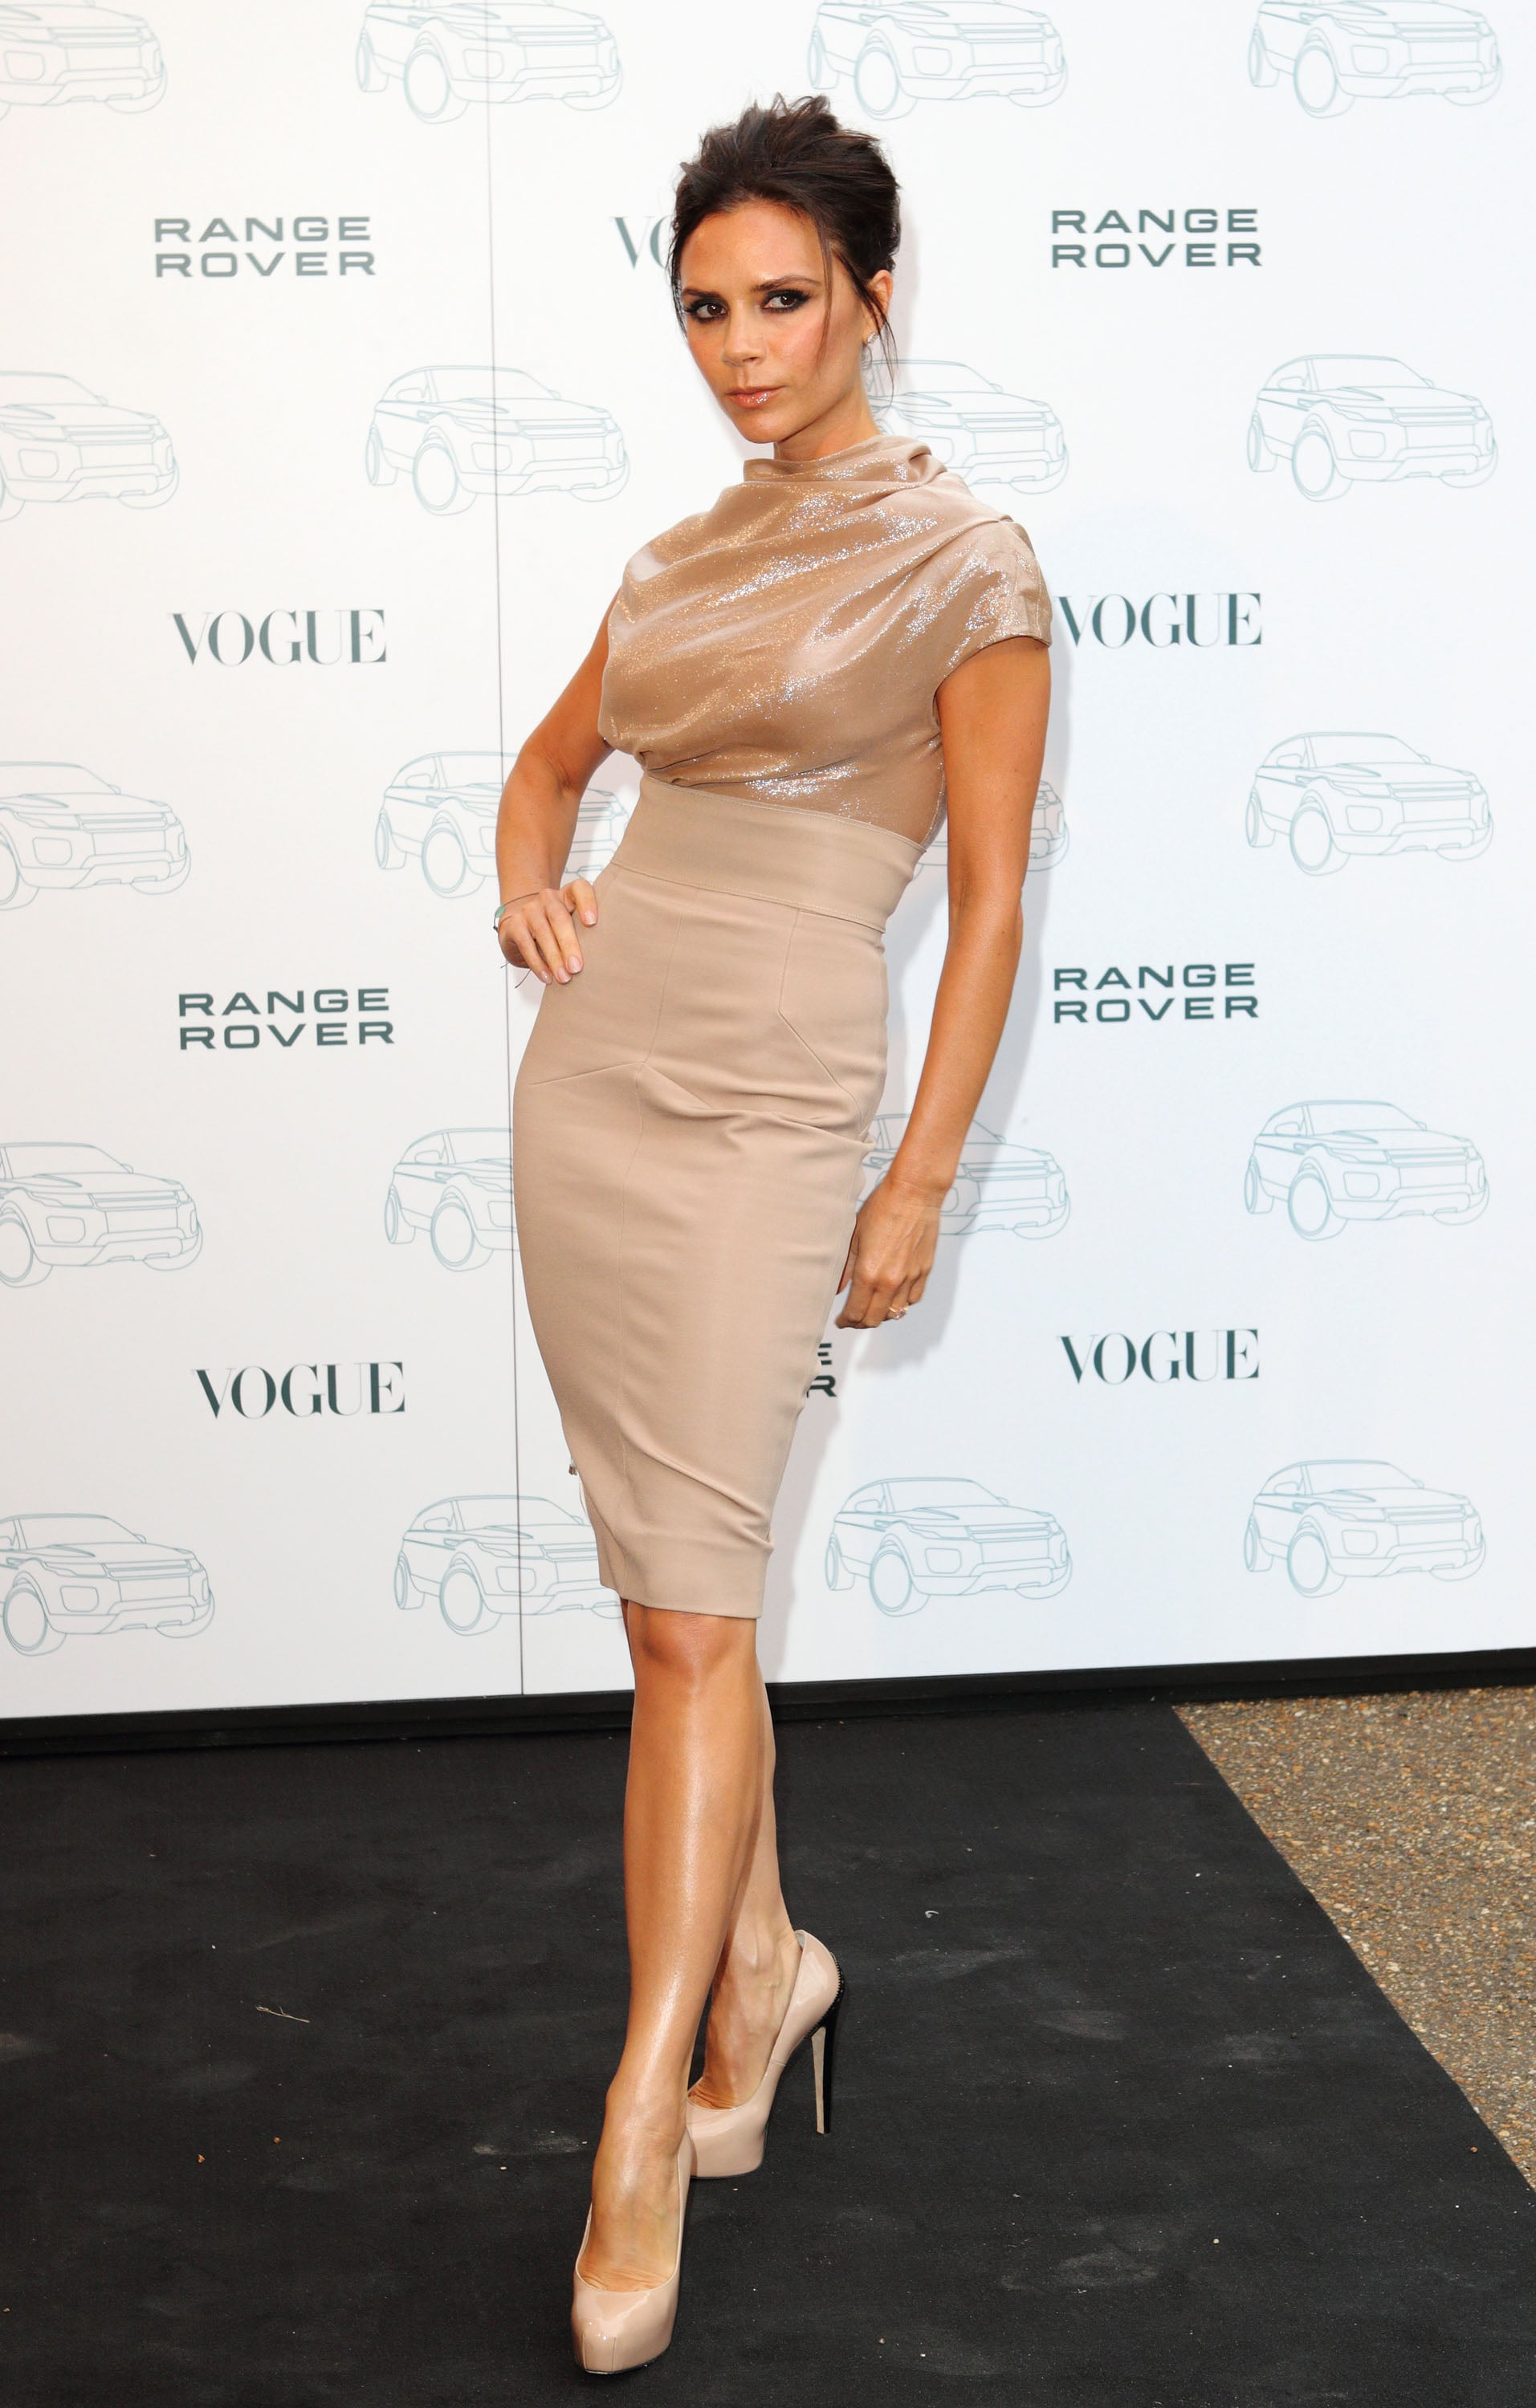 Big Brian fan, Victoria Beckham went for head to toe nude at the Range Rover 40th Anniversary party back in September.